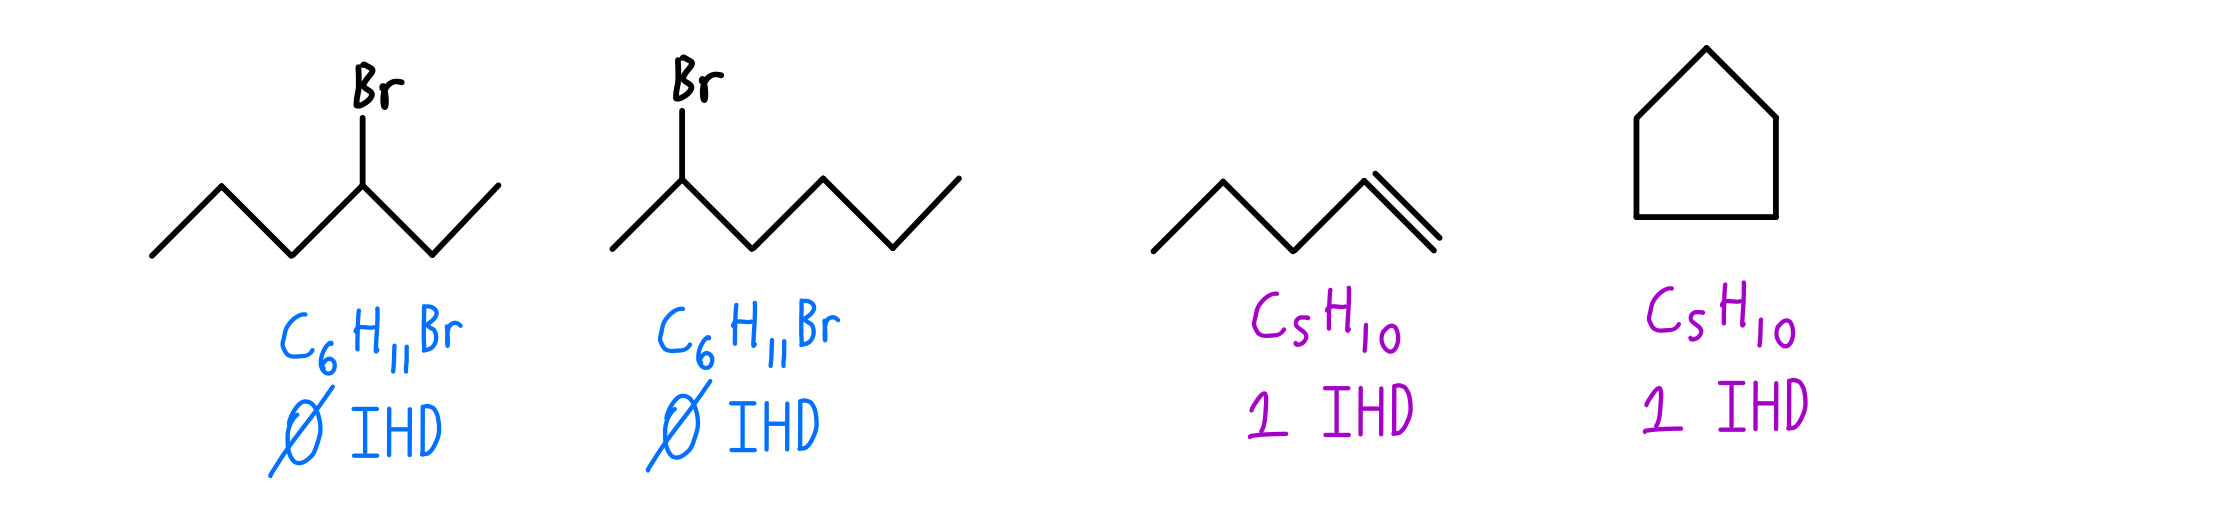 bromohexane-and-pentene-constitutional-isomers